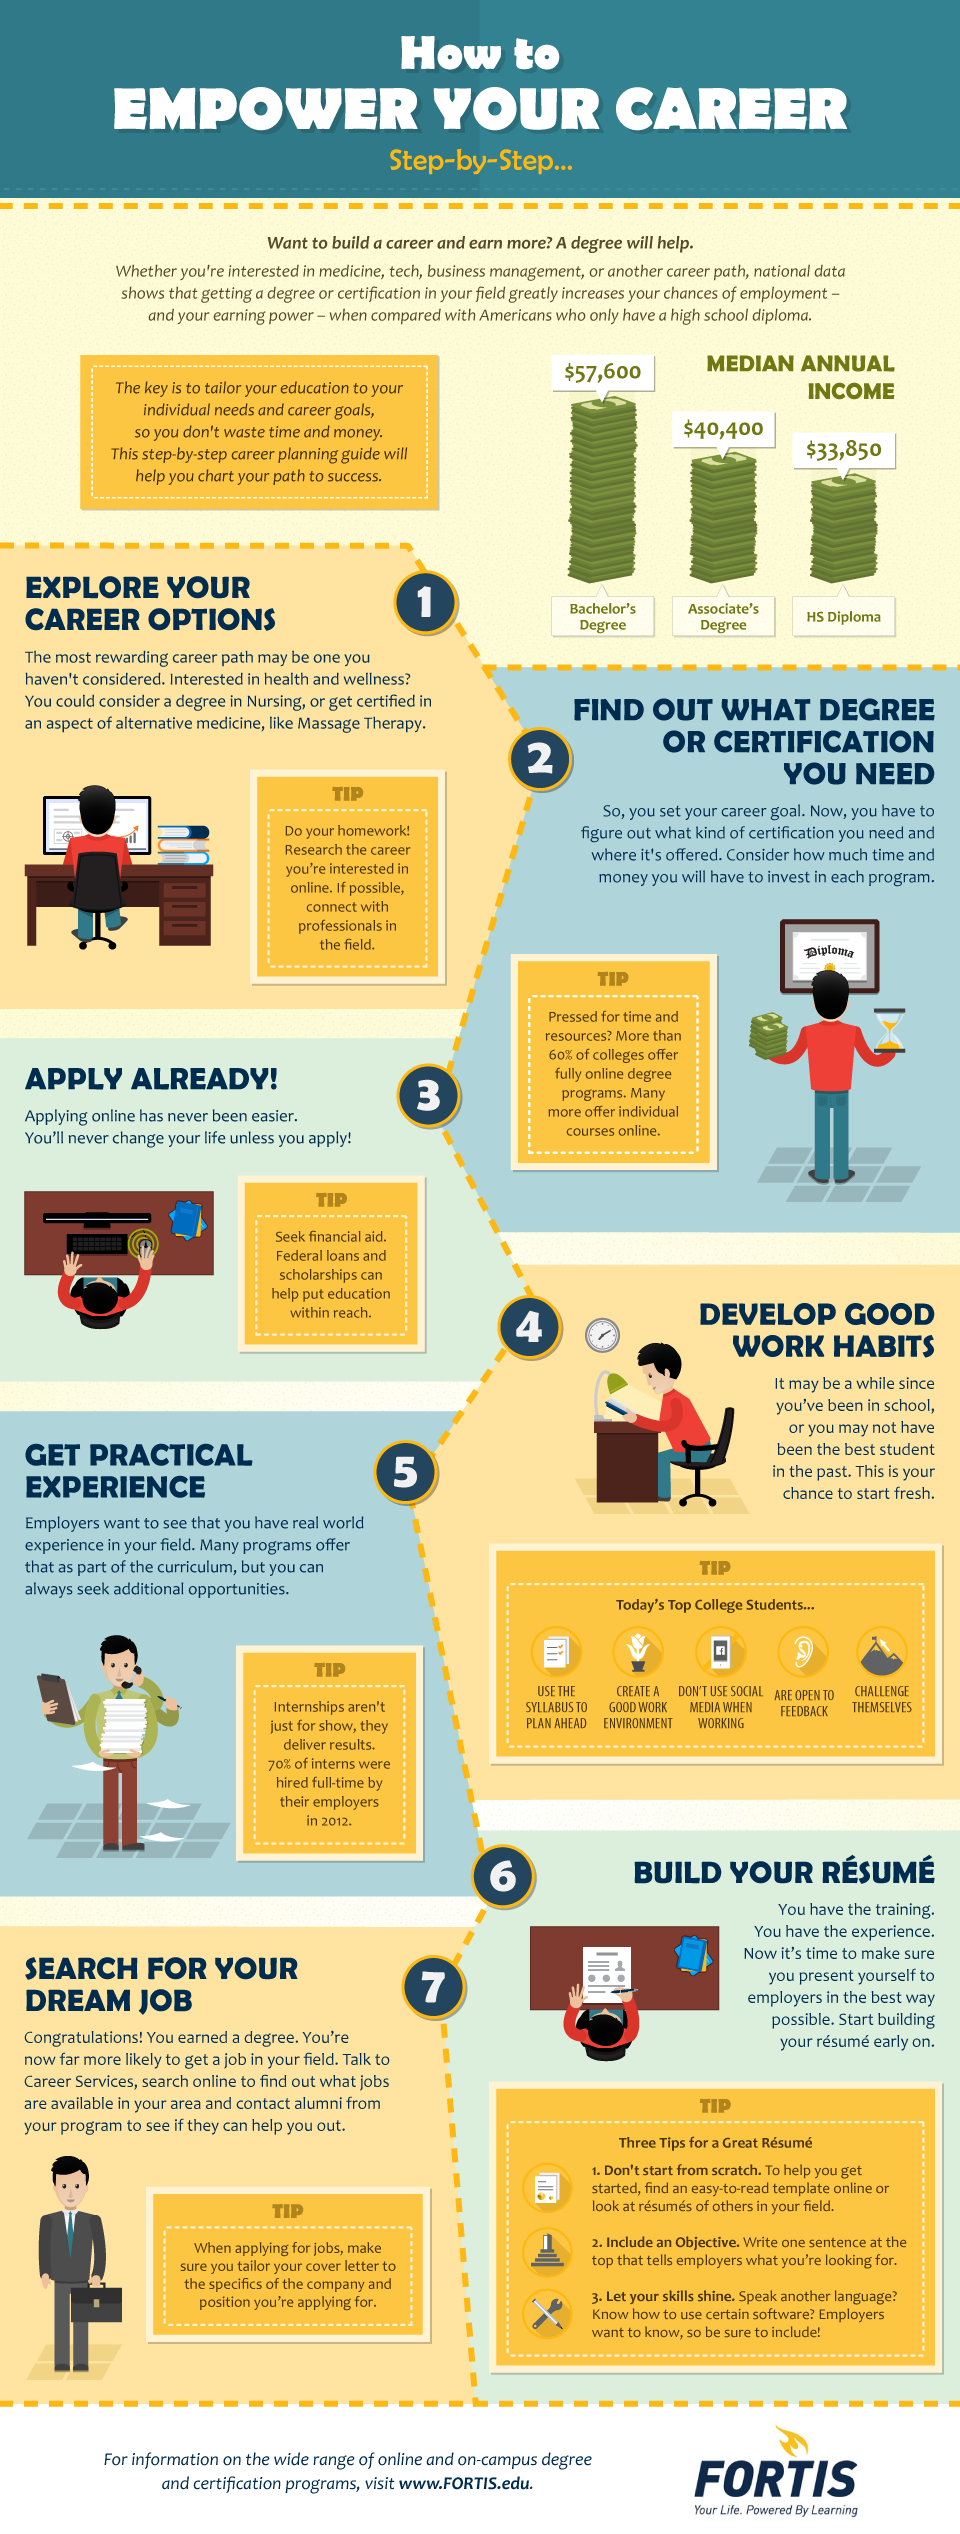 How to Empower Your Career - Step-by-Step #Infographic